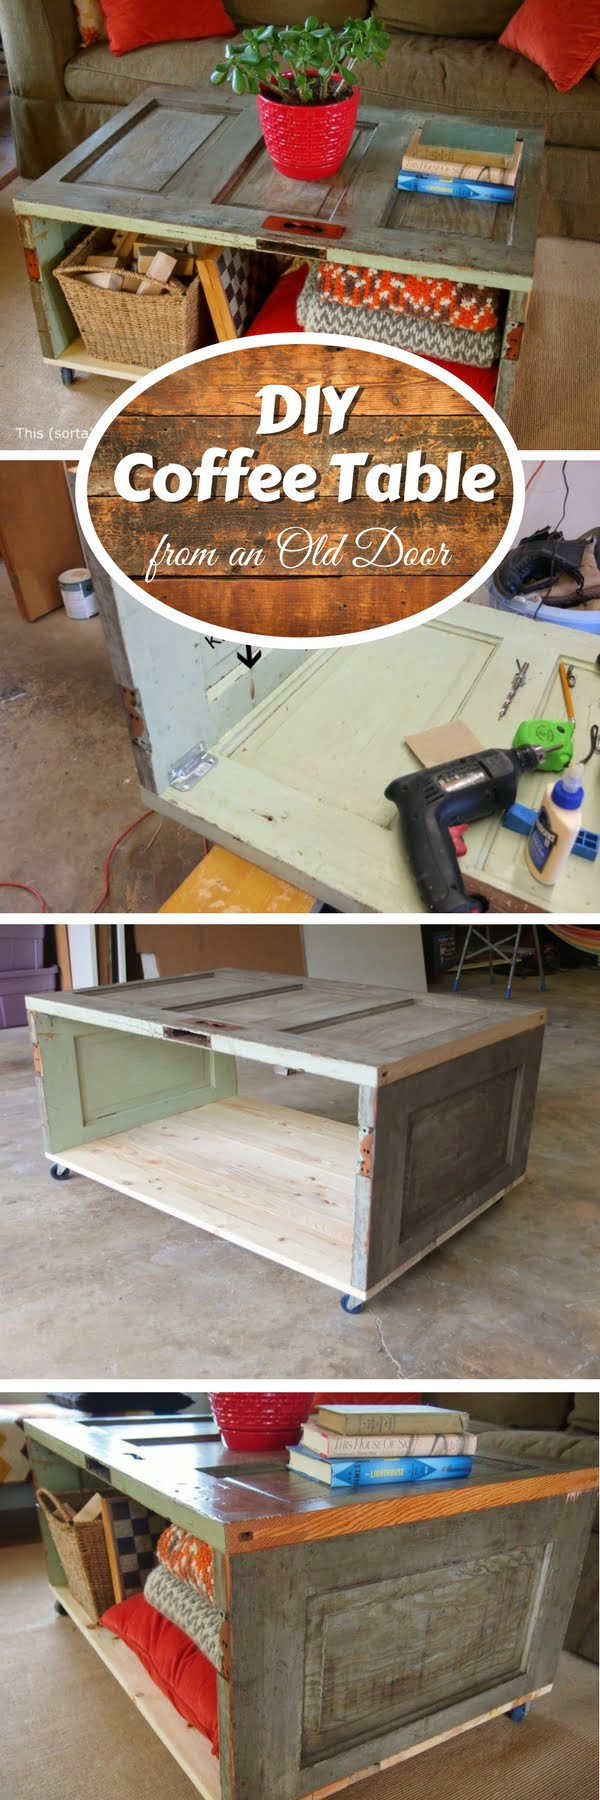 Check out how to build a DIY coffee table from an old door